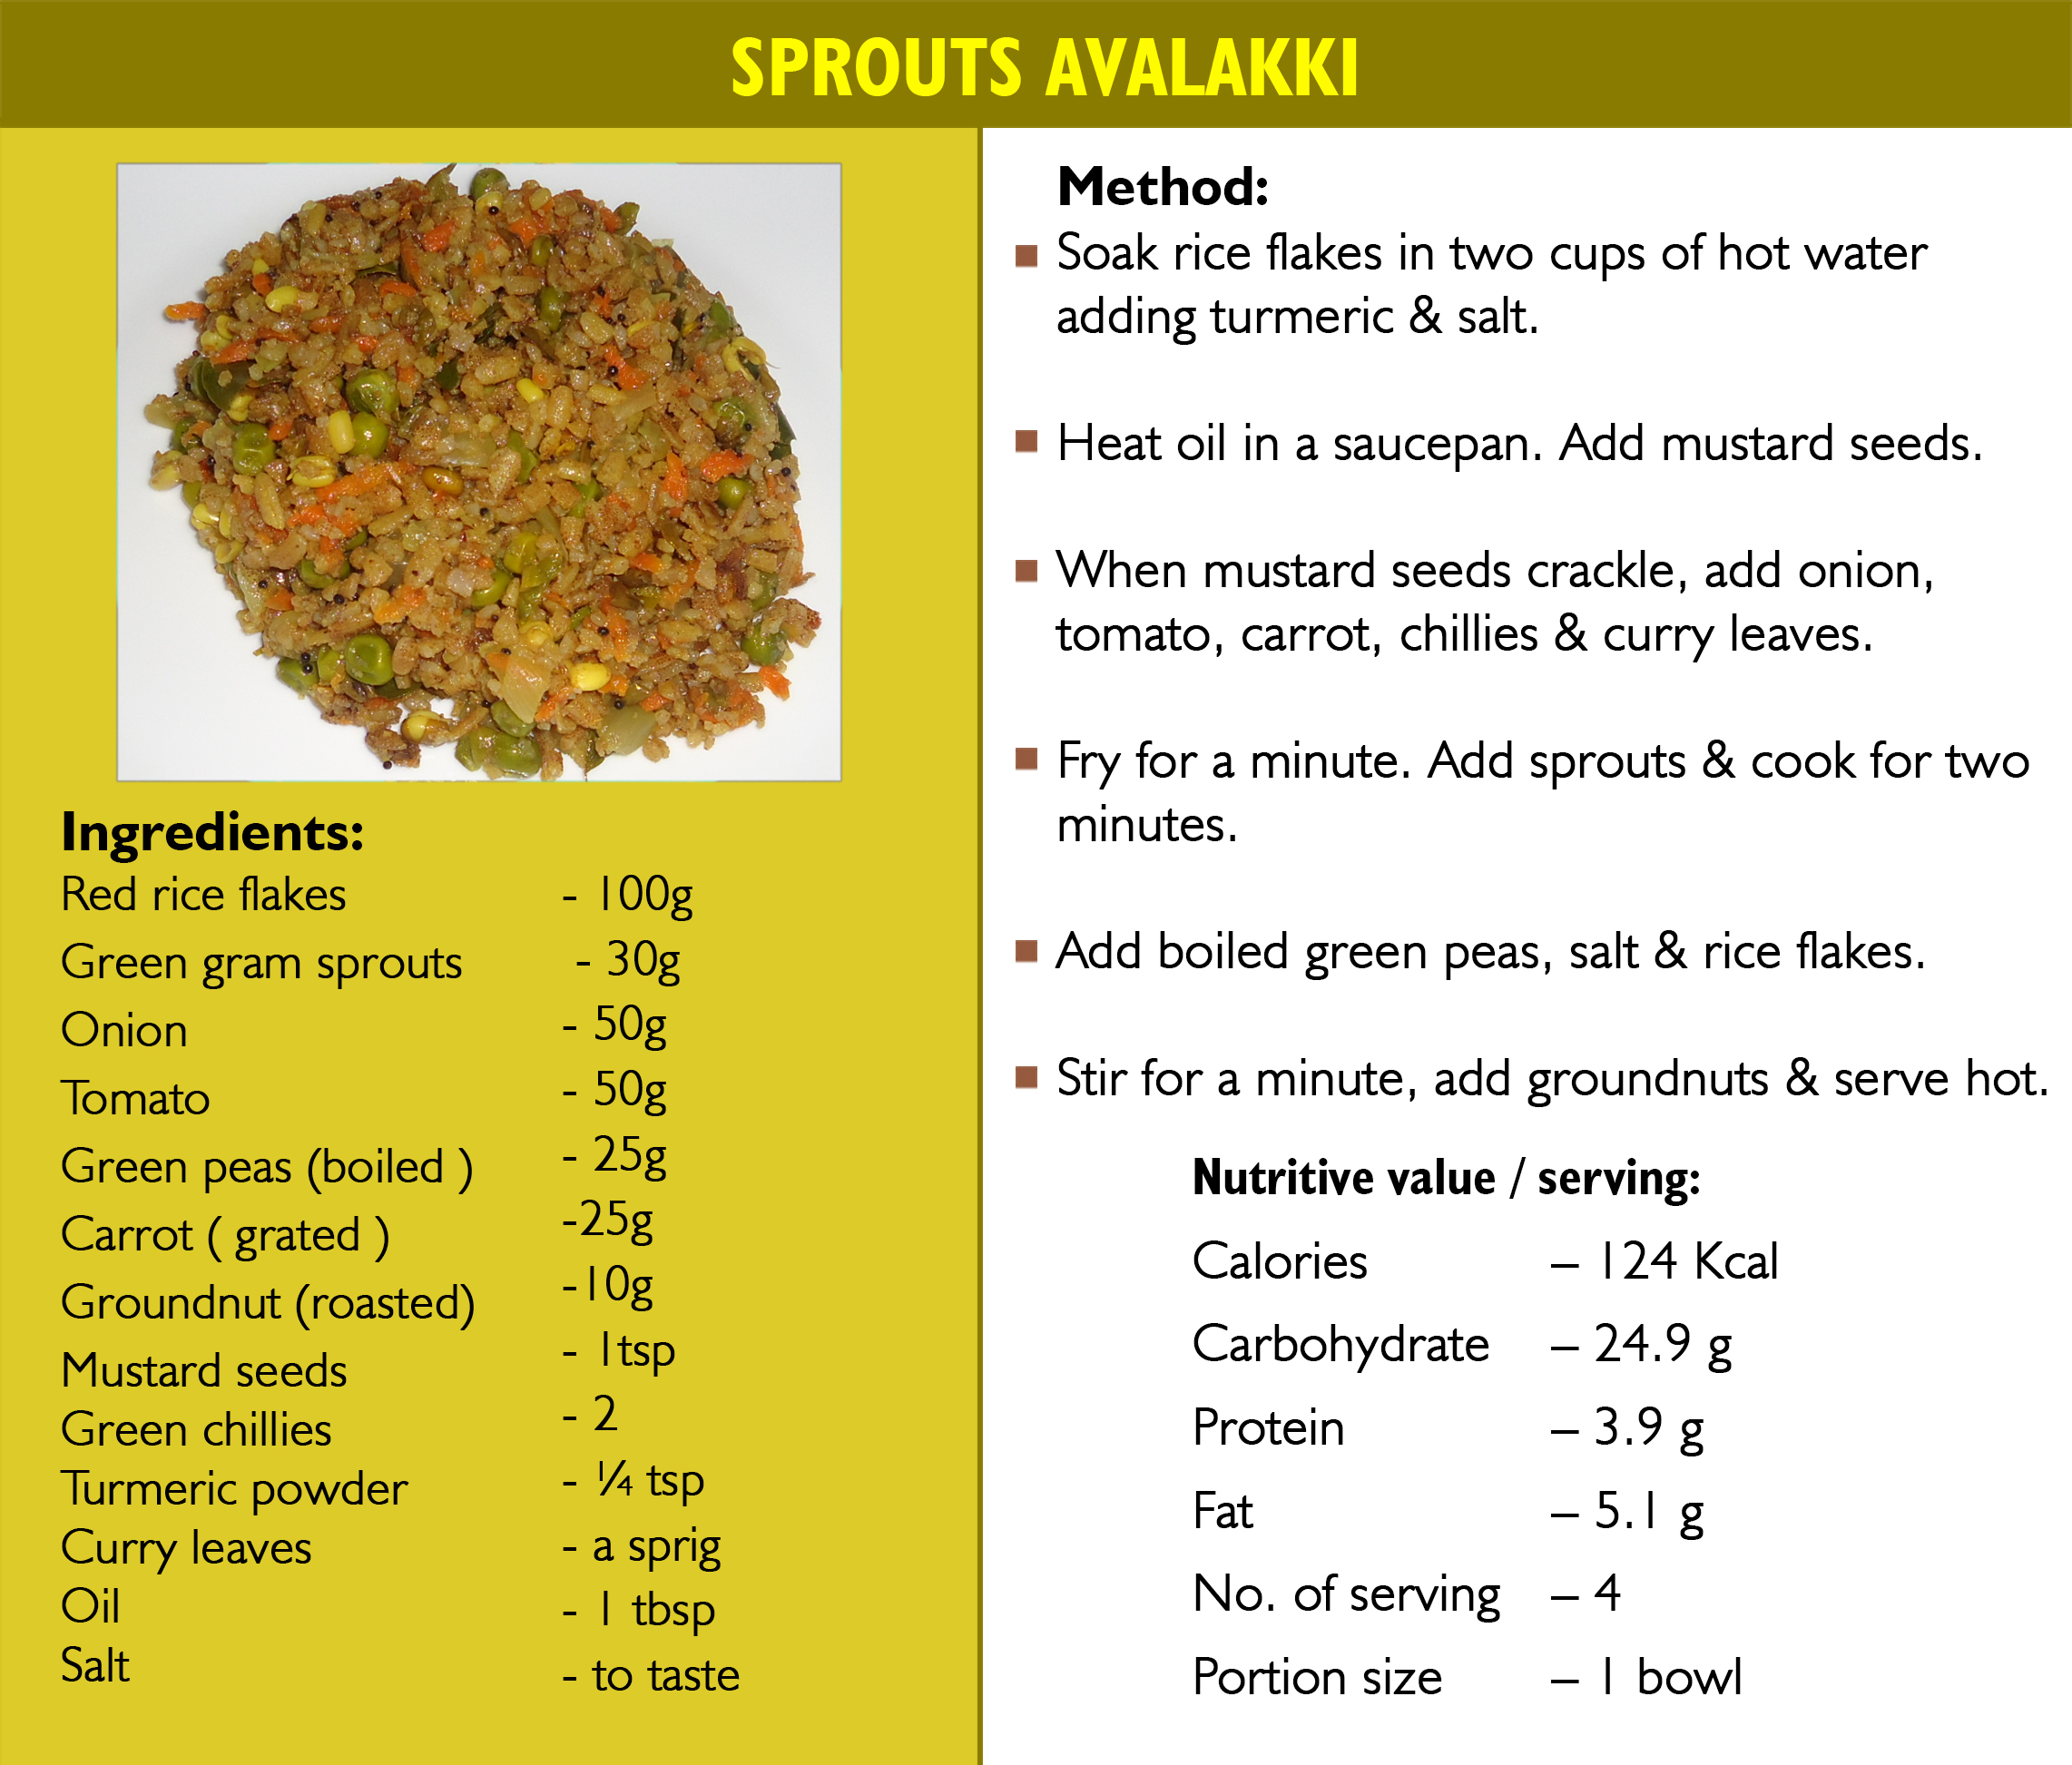 Diabetic recipes diet for diabetes diabetic diet food for diabetes diet diabetic recipes 18 sprouts avalakkig forumfinder Choice Image